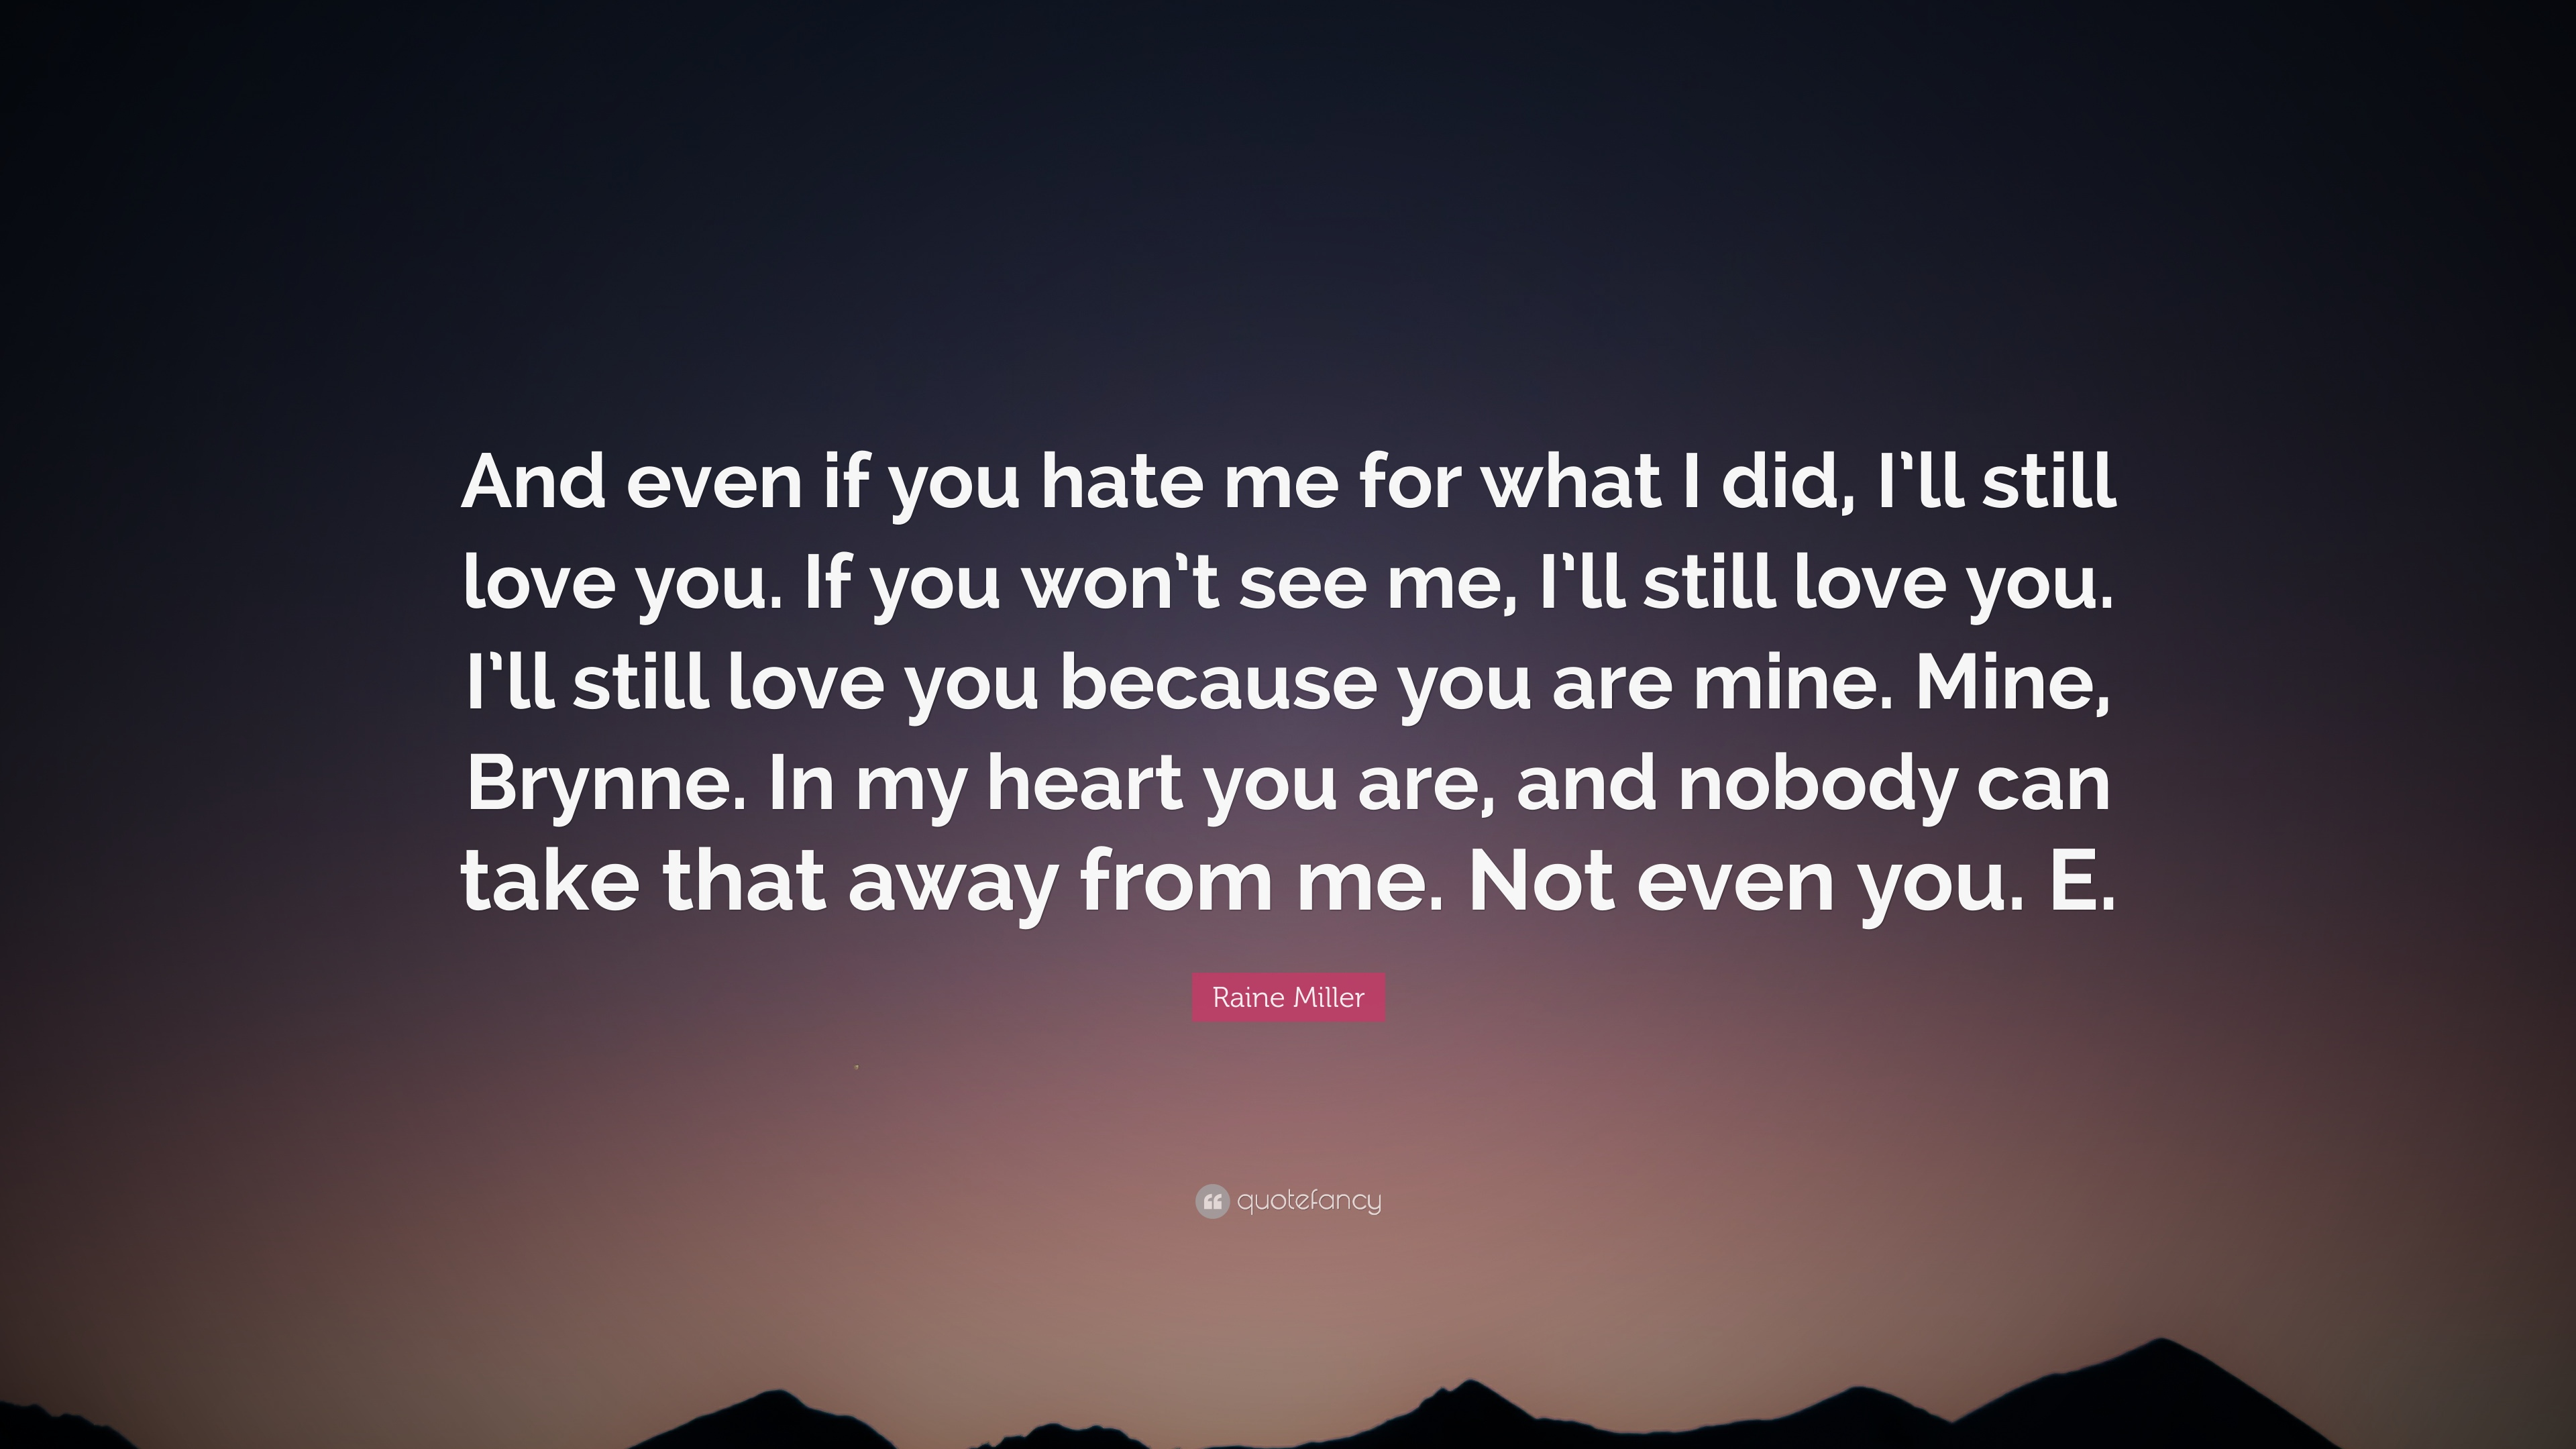 Love You Even If You Hate Me Quotes Archidev